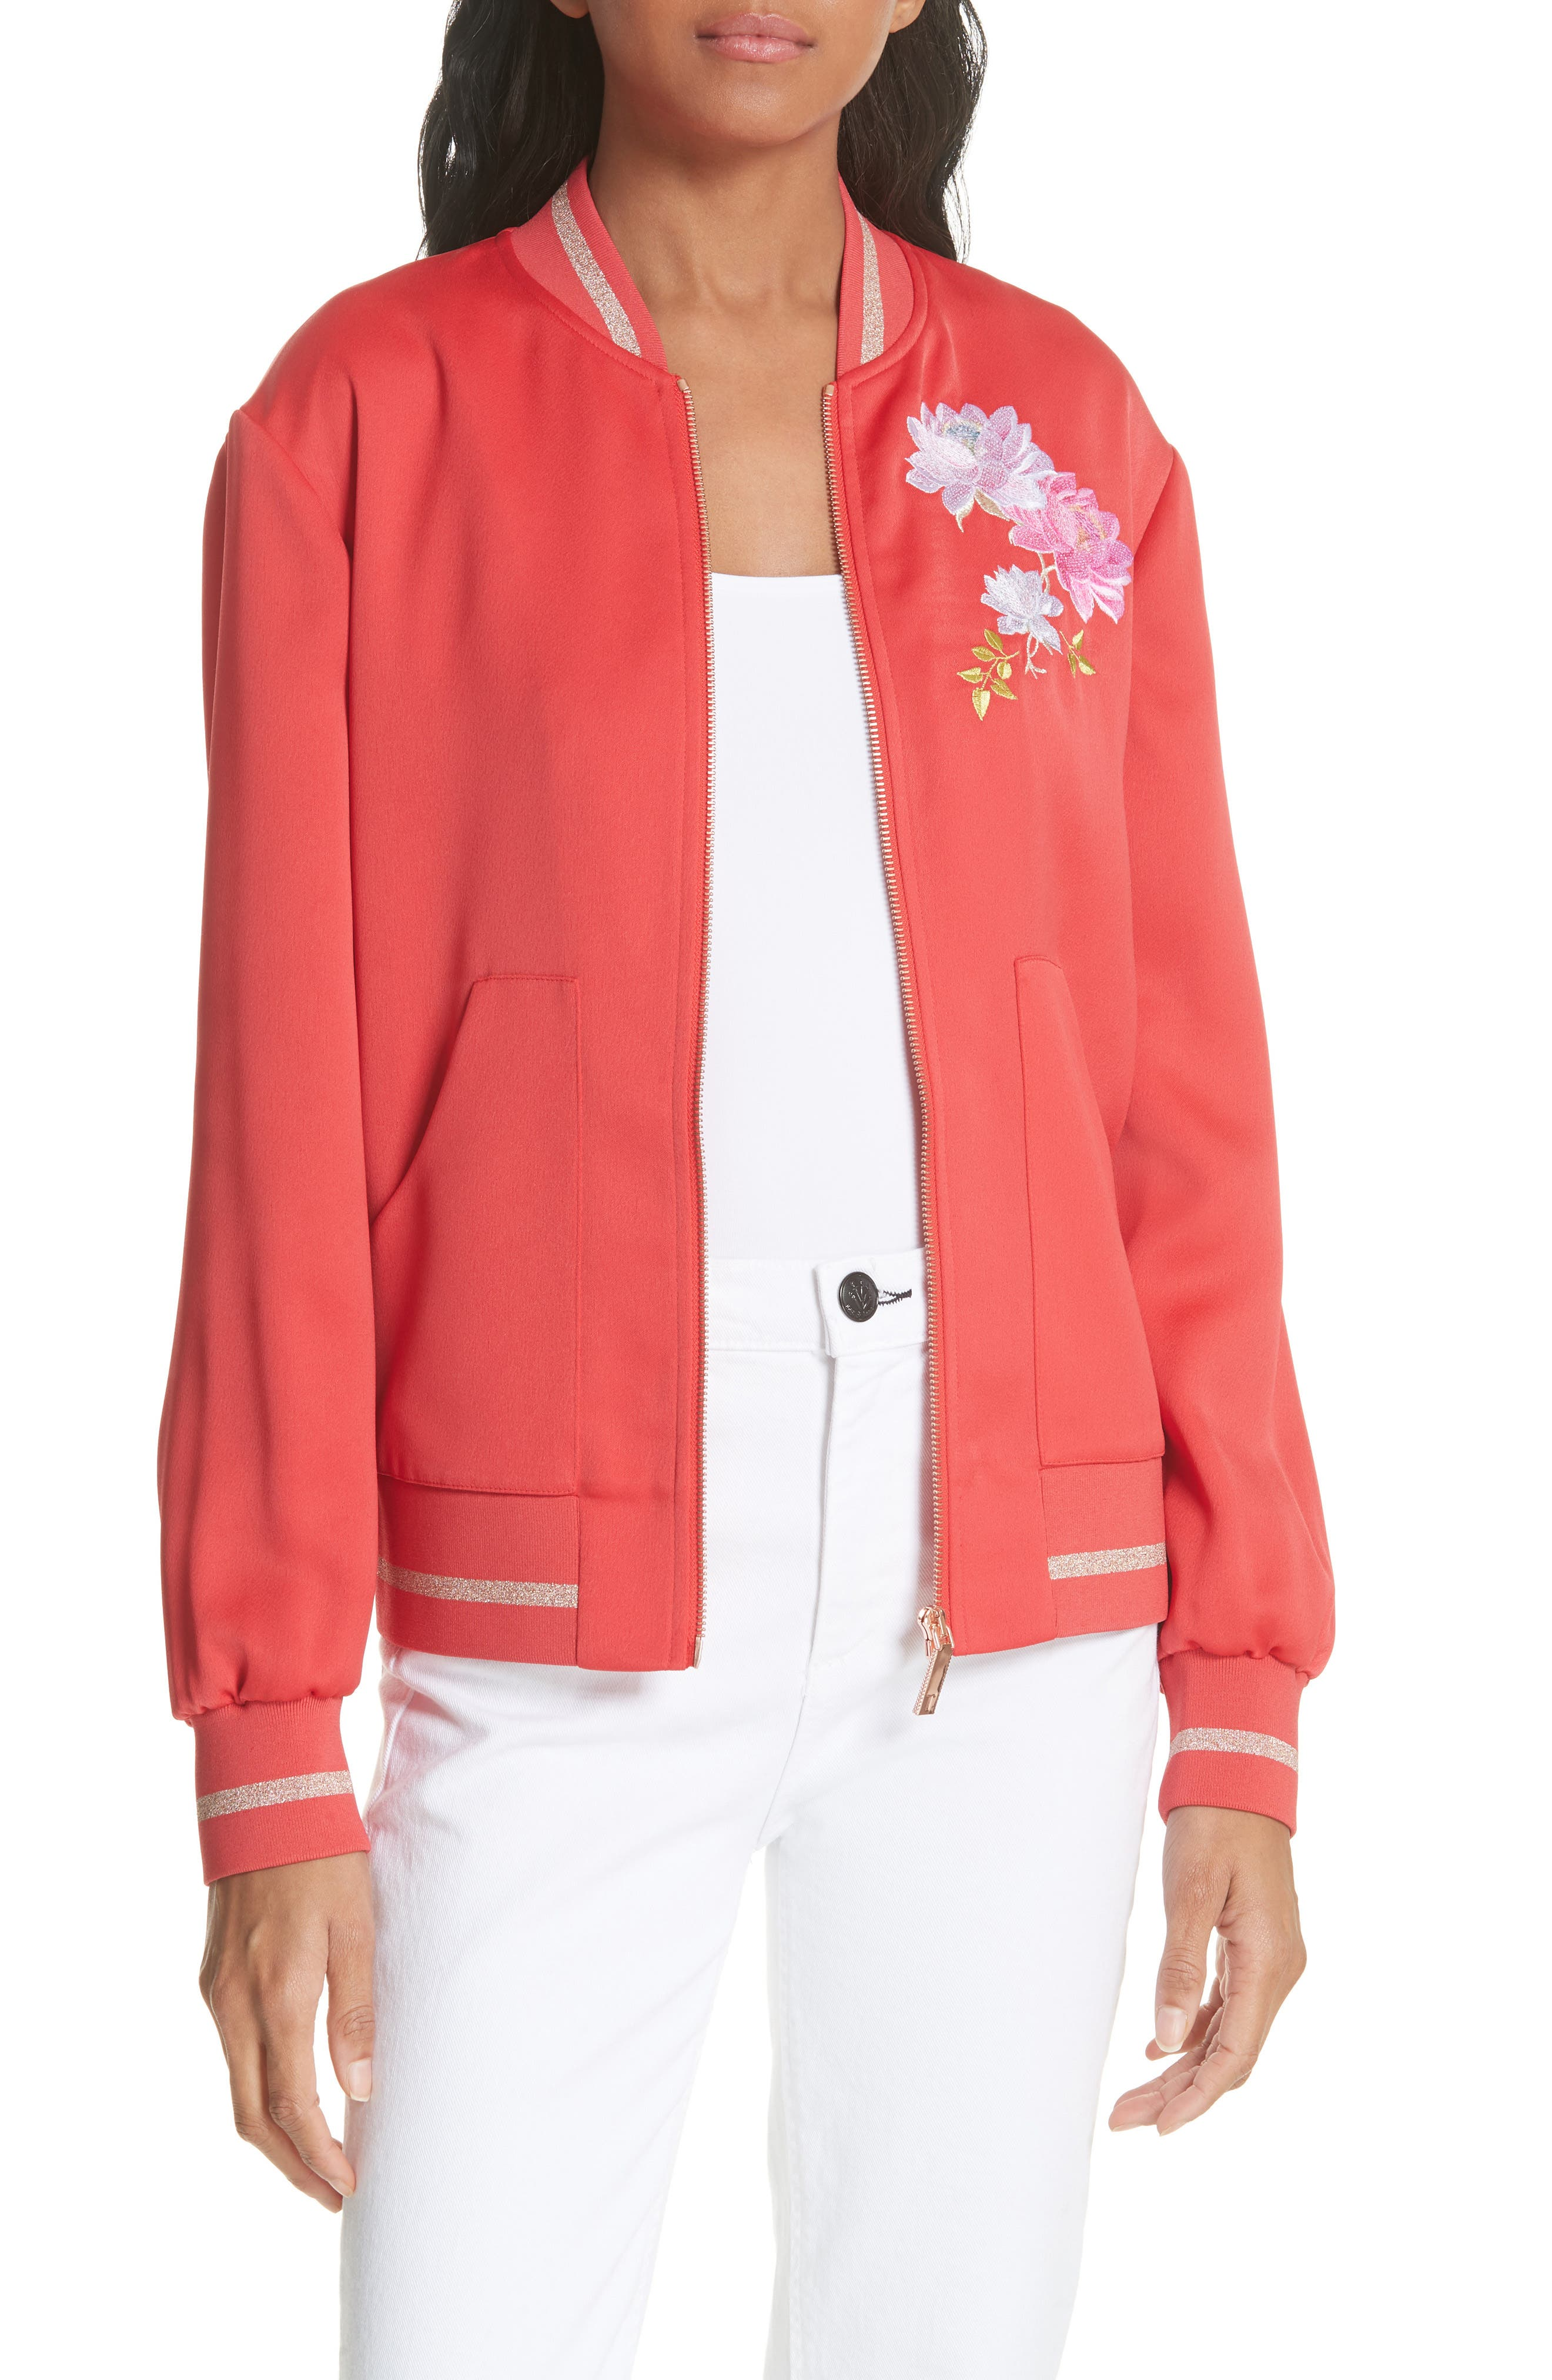 Ruuthe Chinoiserie Embroidery Jacket,                             Main thumbnail 1, color,                             Bright Red